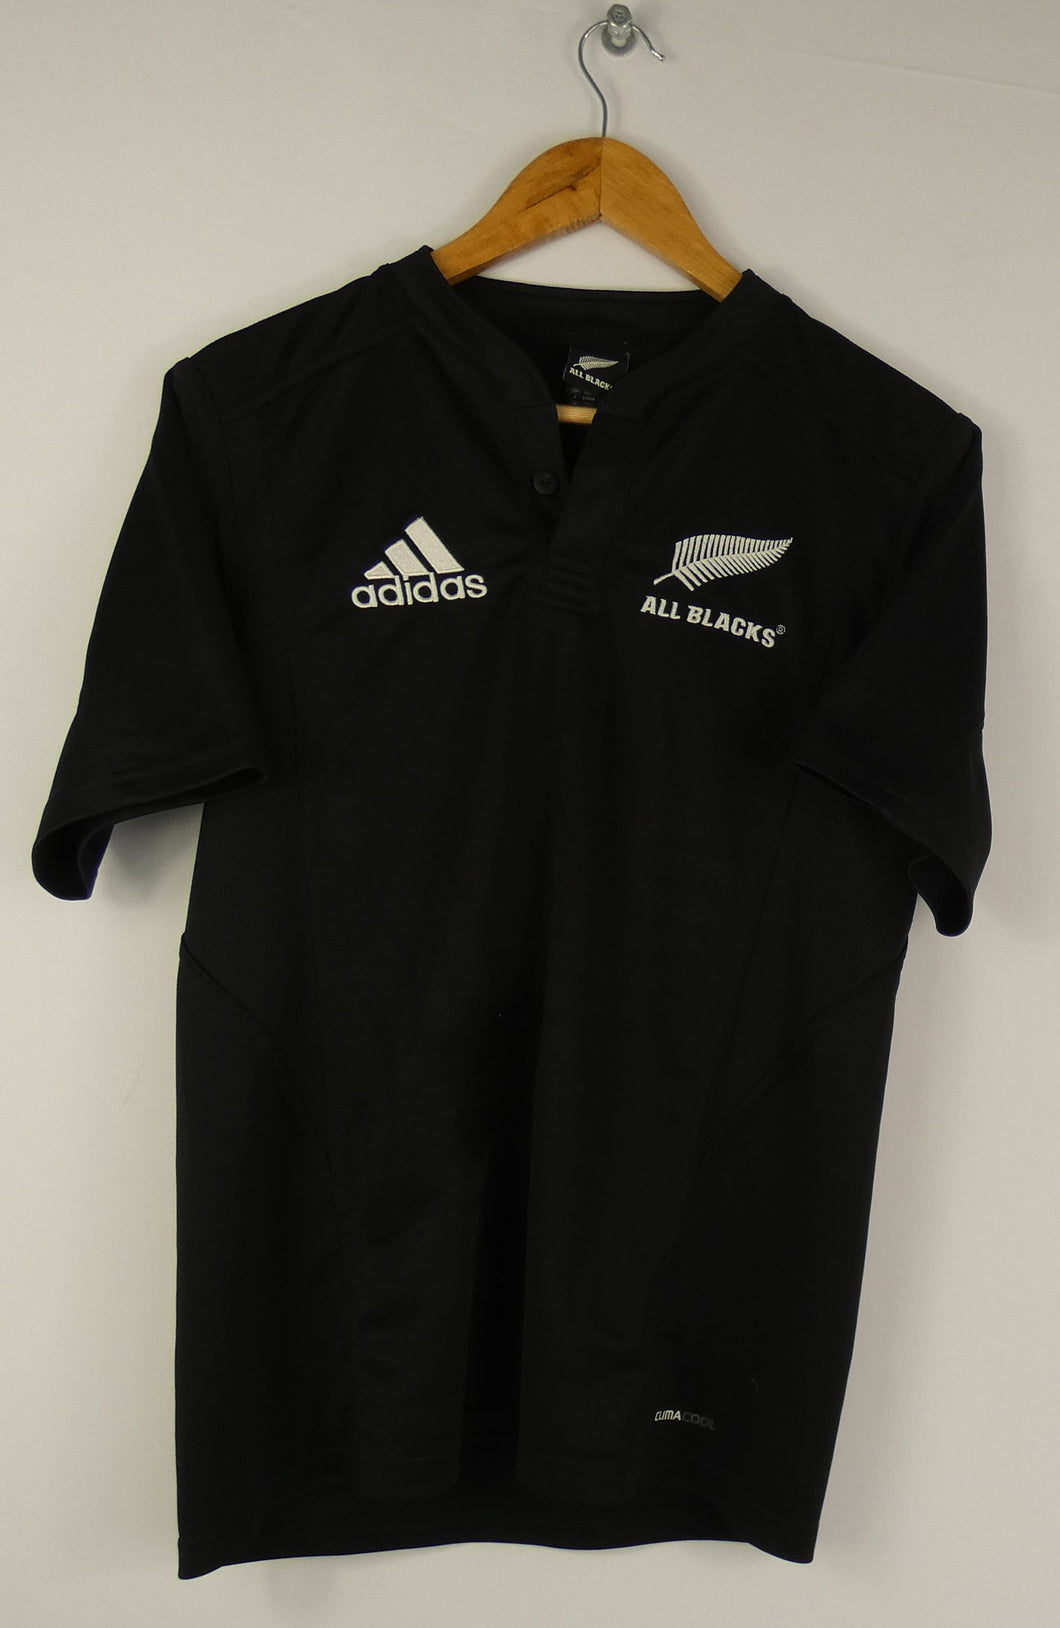 Adidas All Blacks Jersey (S)